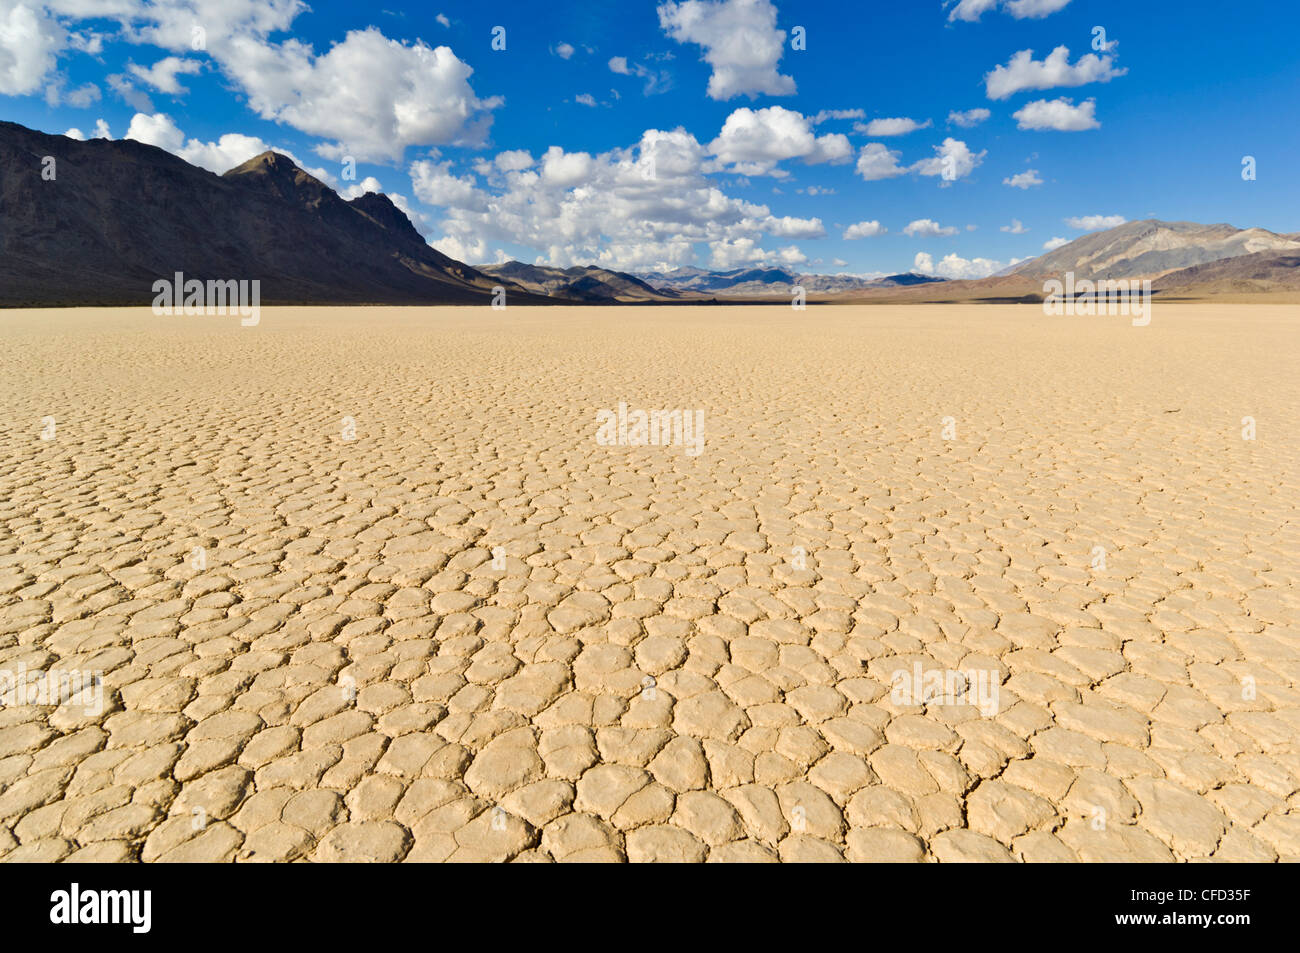 Die Tribüne im Tal Racetrack, Death Valley Nationalpark, Kalifornien, USA Stockbild